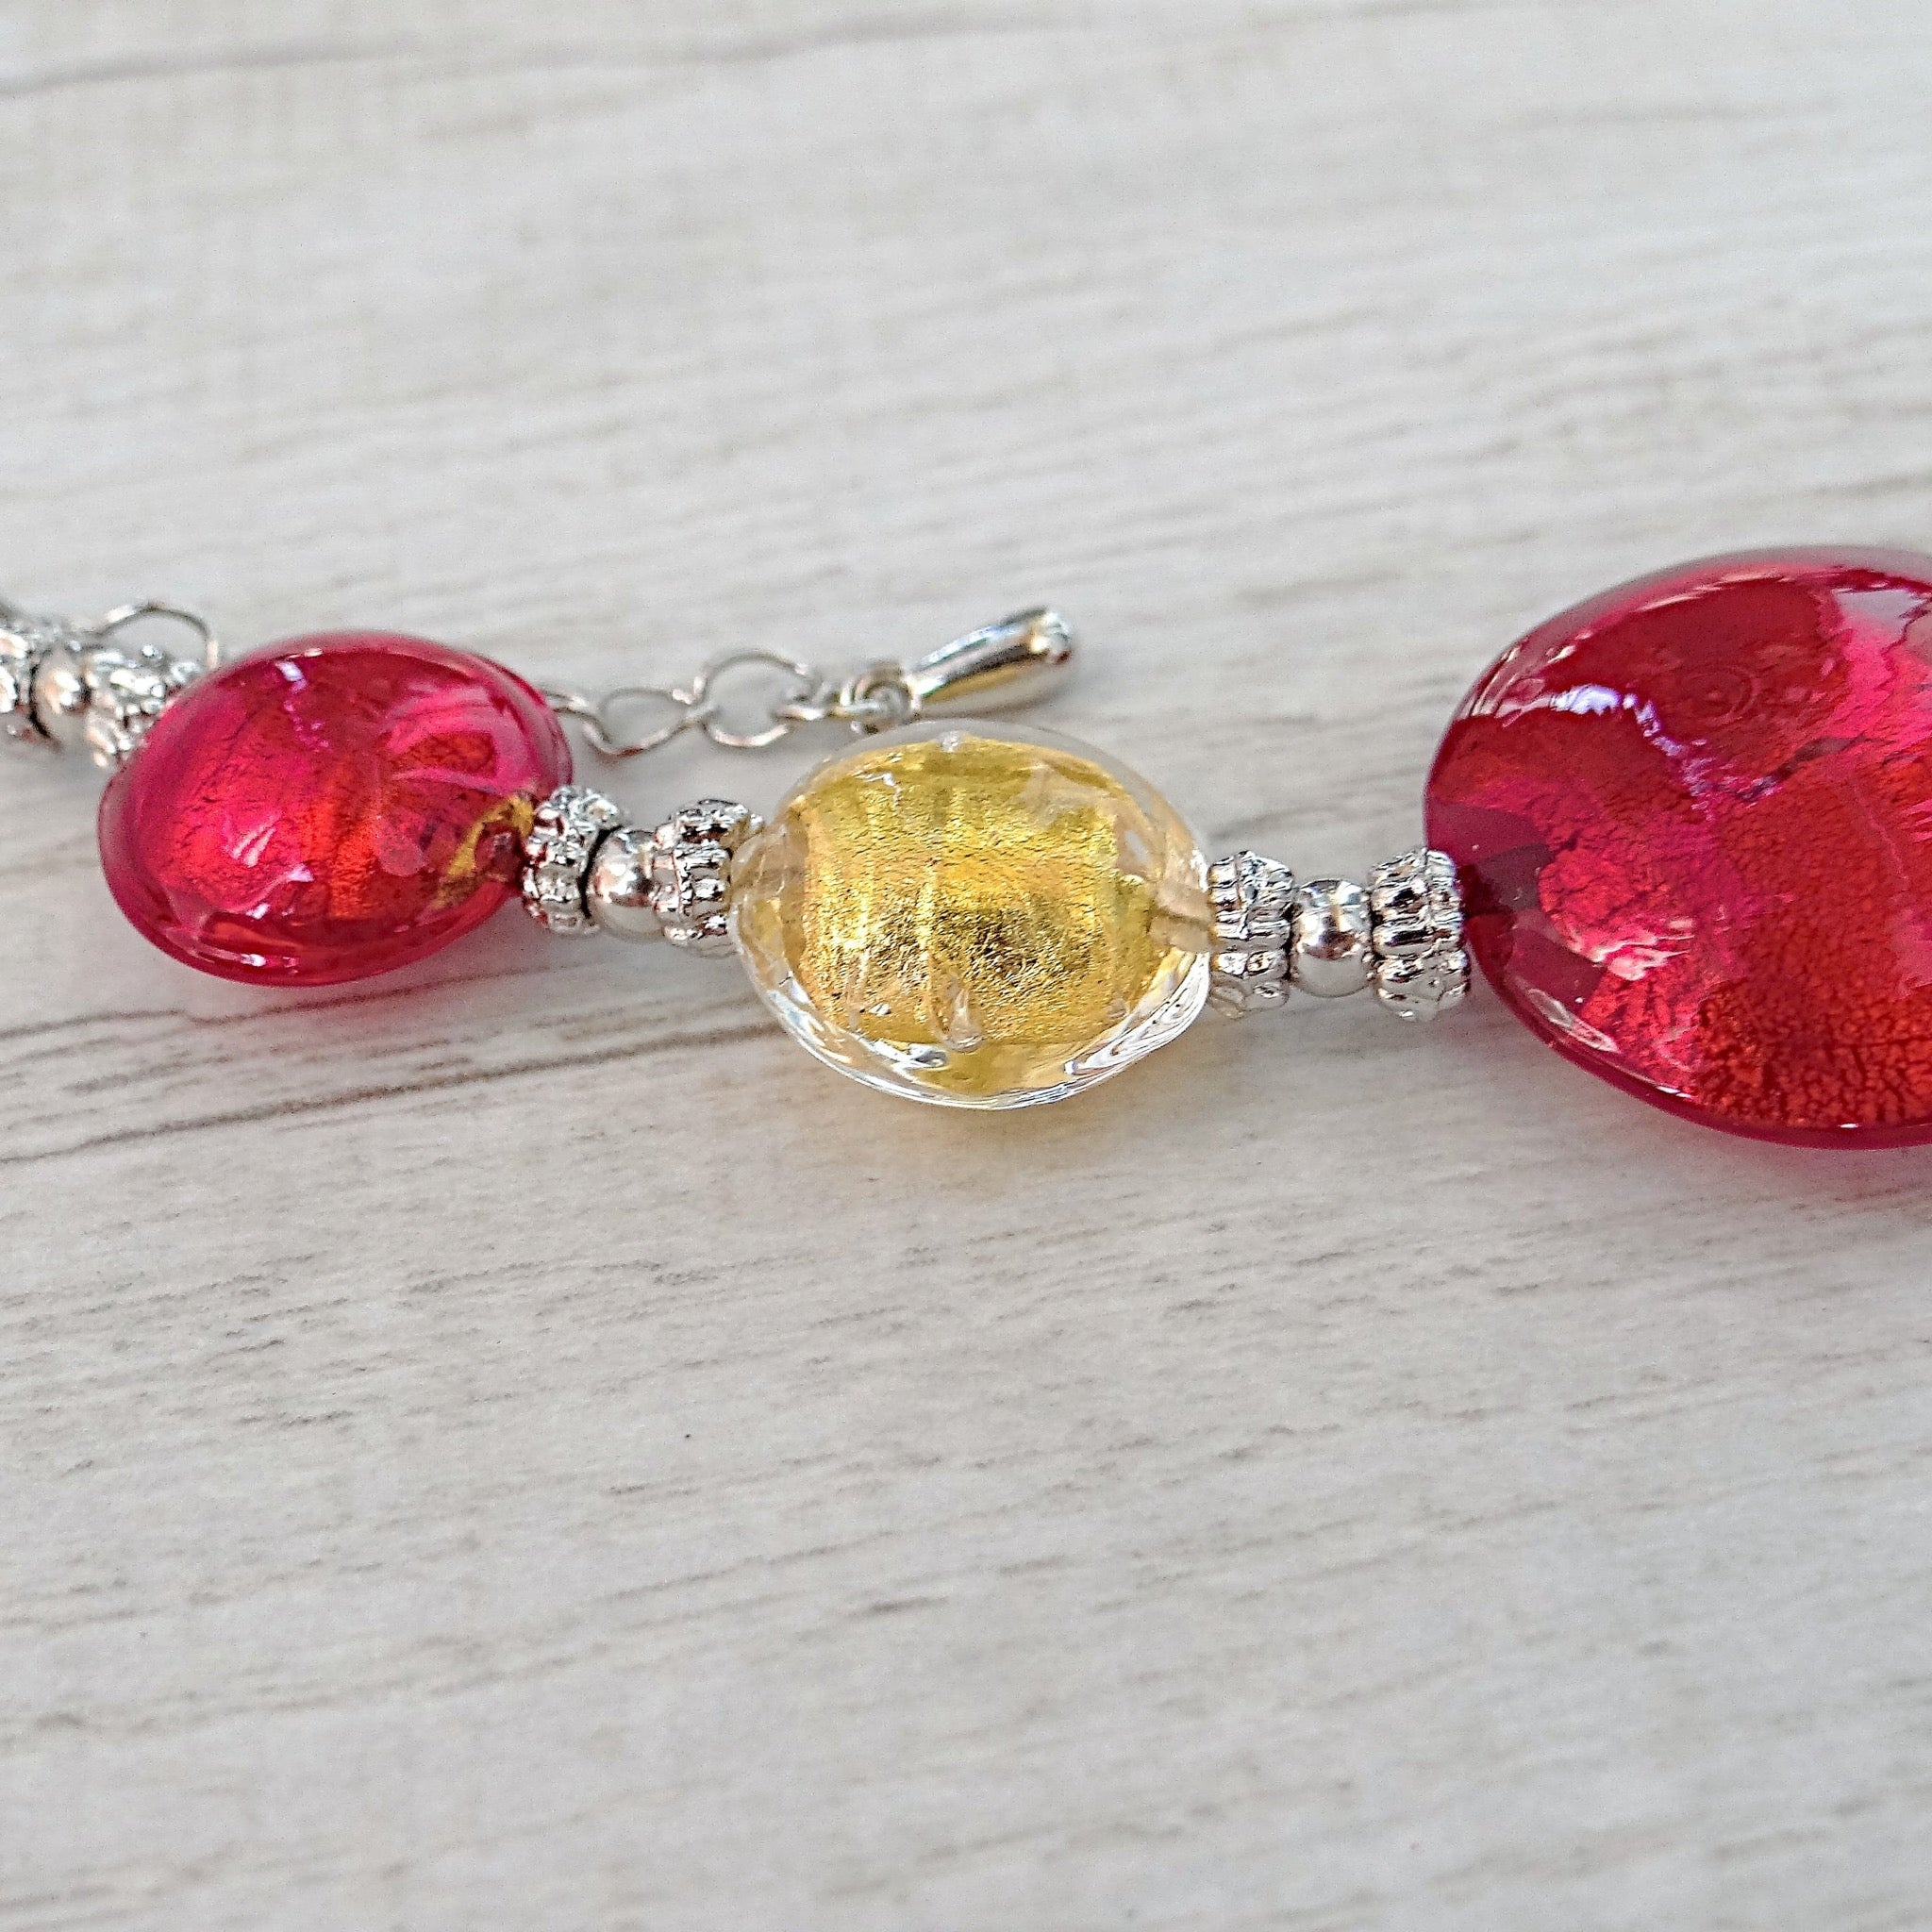 Maravégia - Red Murano Glass Bracelet